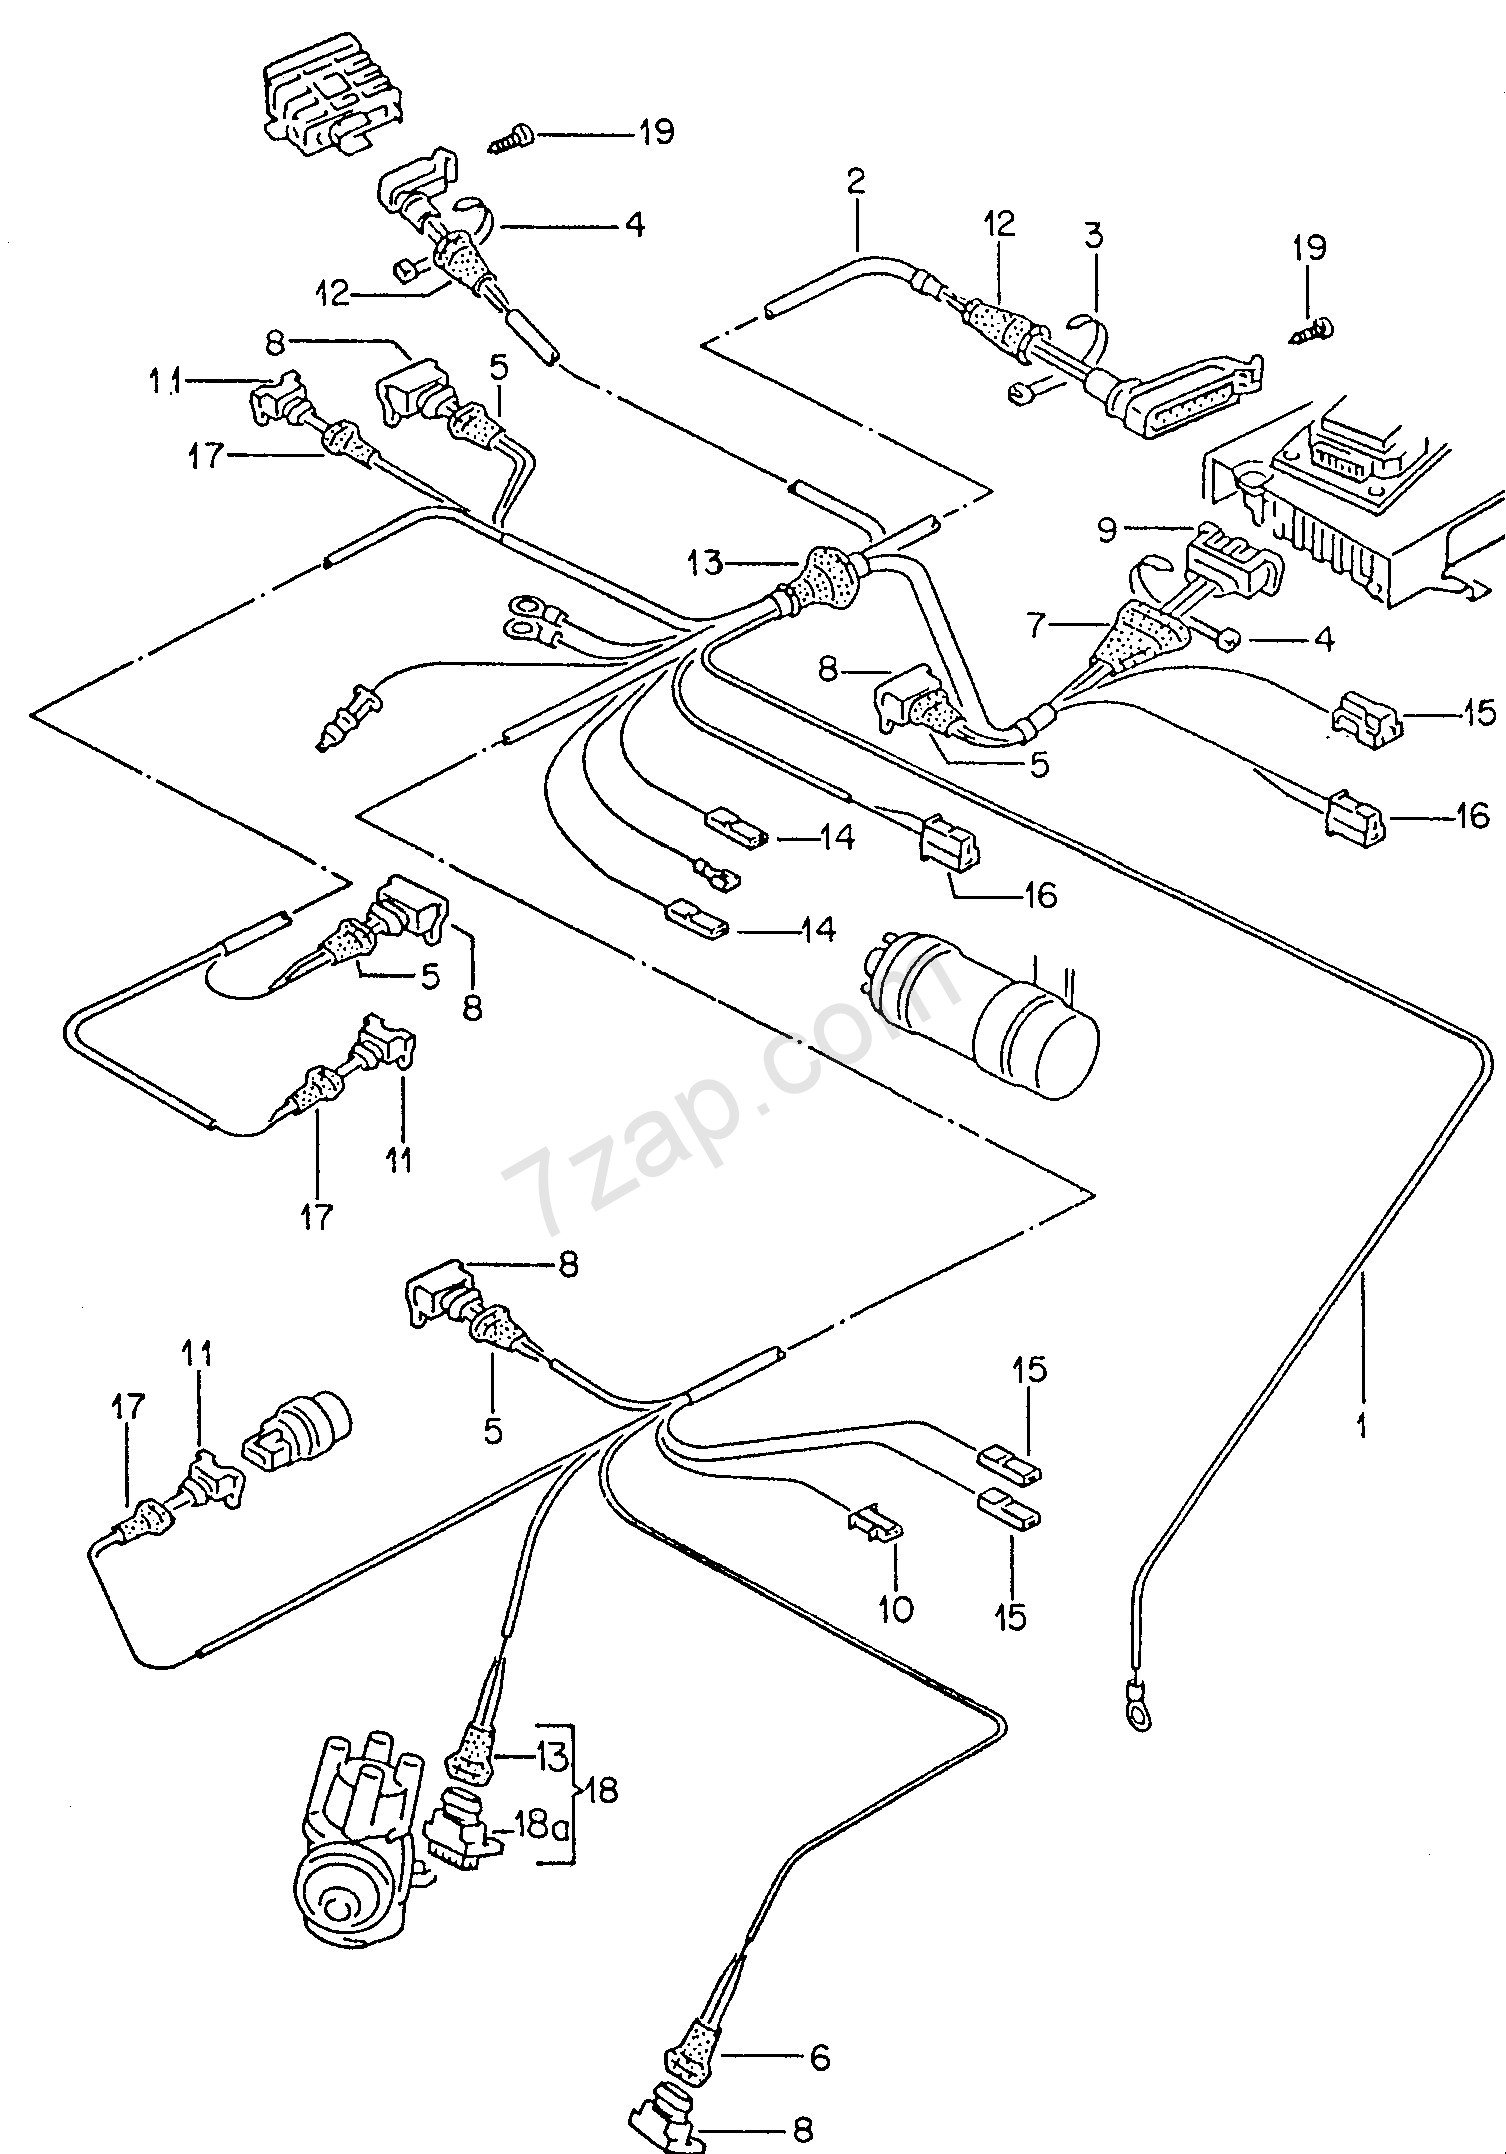 1998 honda trx300 carburetor diagram com